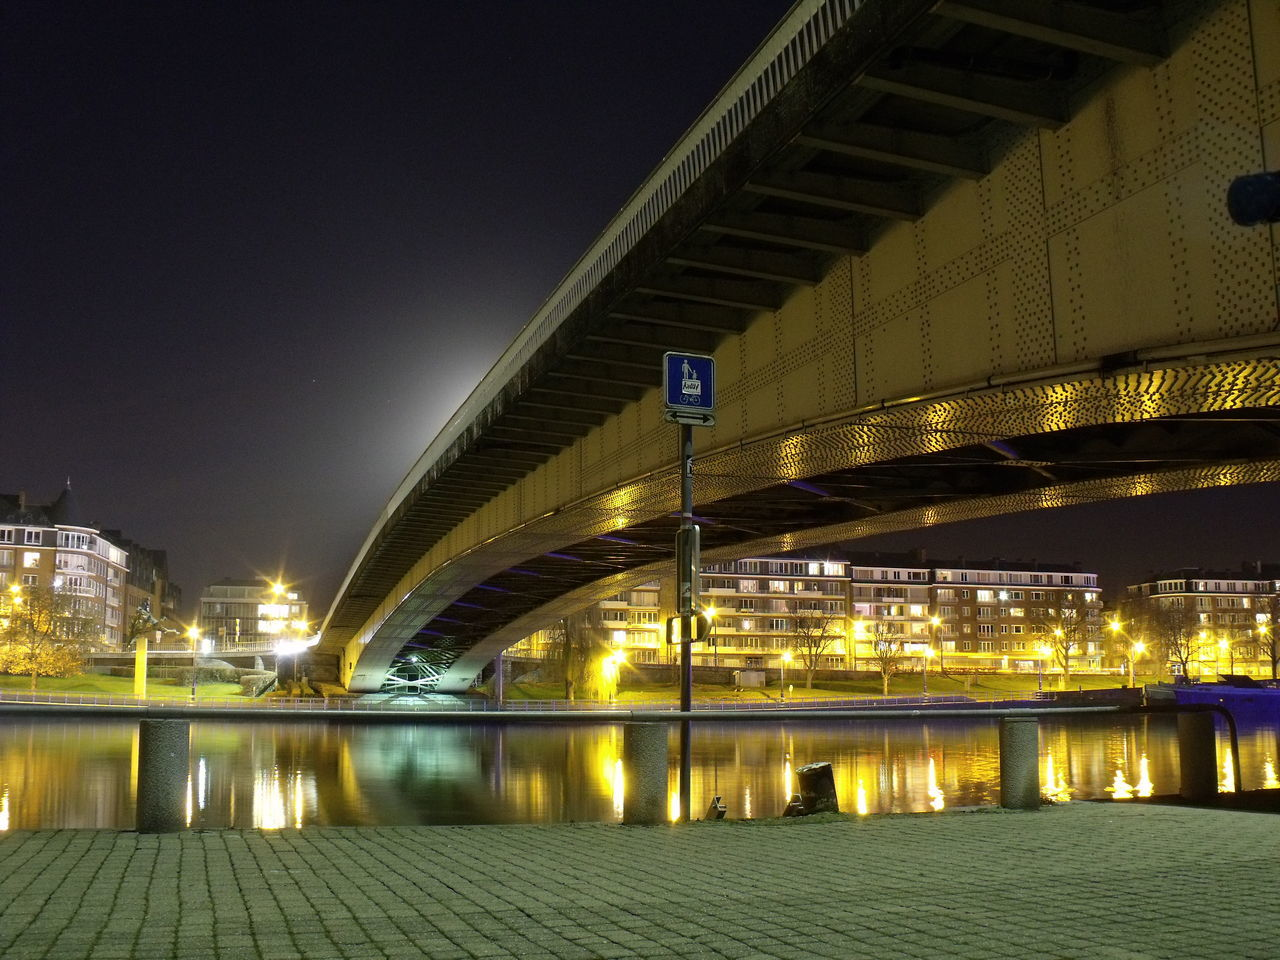 illuminated, night, architecture, built structure, river, water, railing, bridge - man made structure, building exterior, reflection, travel destinations, city, outdoors, no people, modern, sky, futuristic